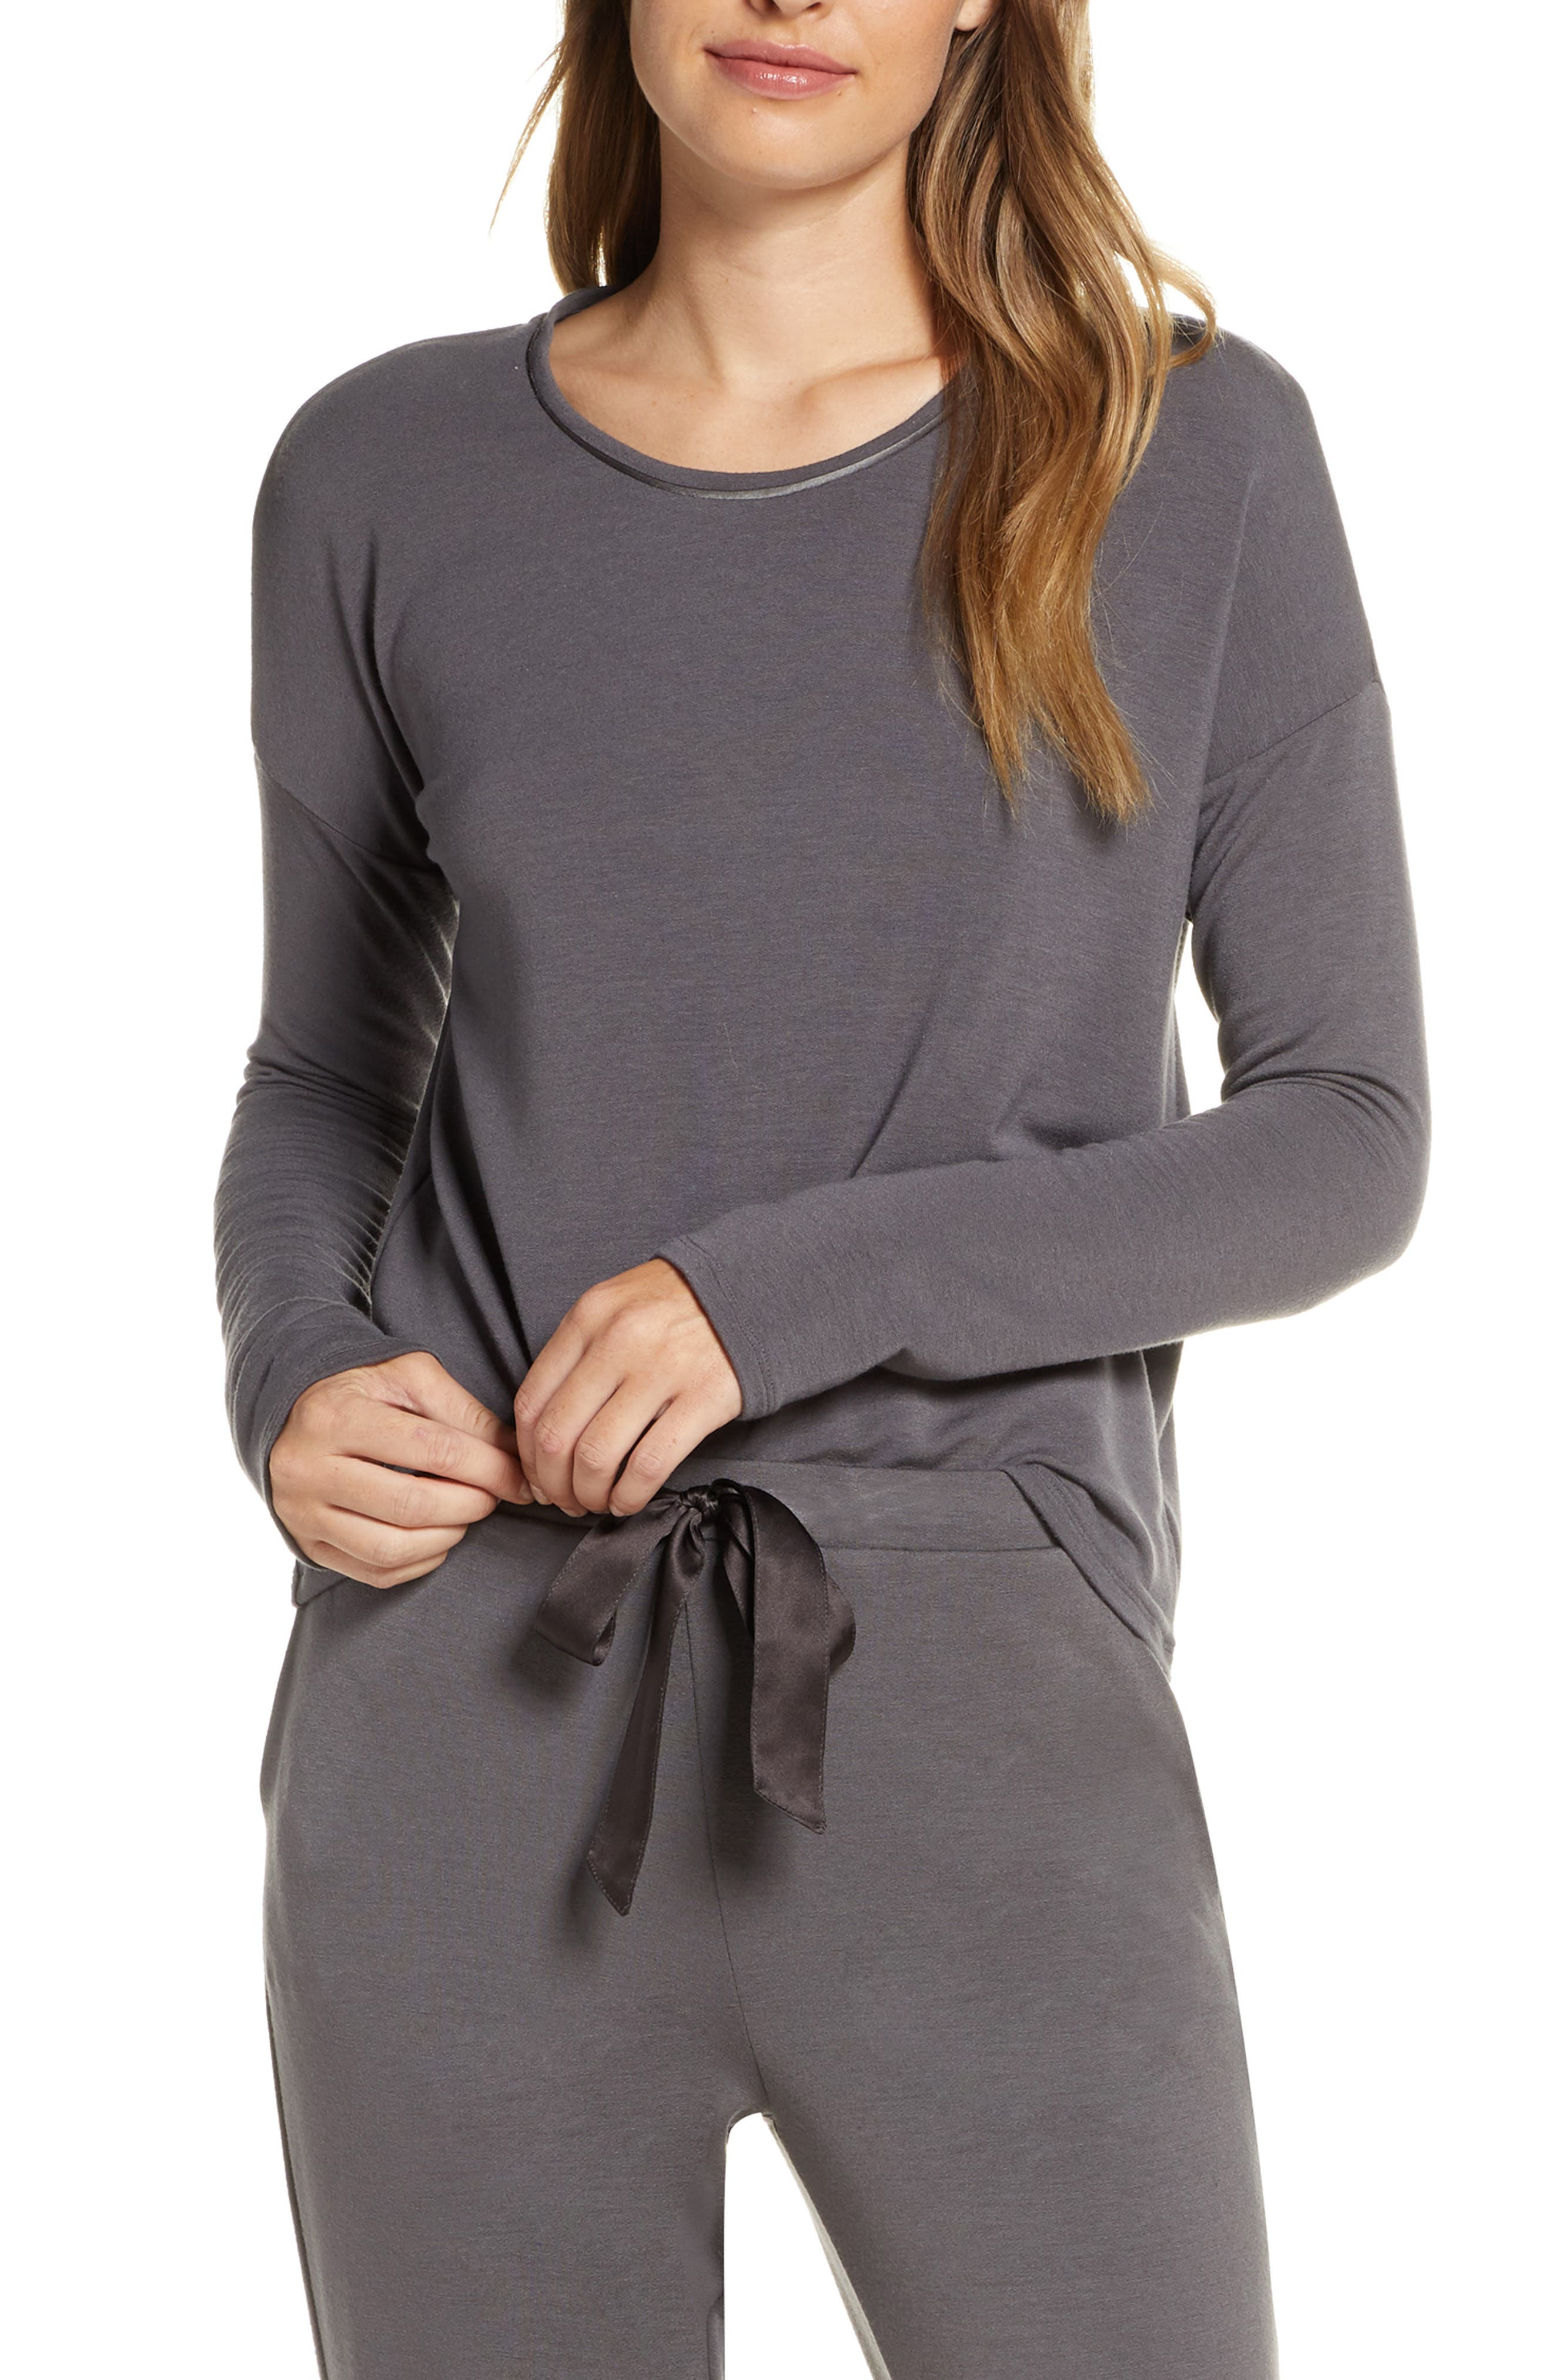 Natori Tops Cozy Sleep Top